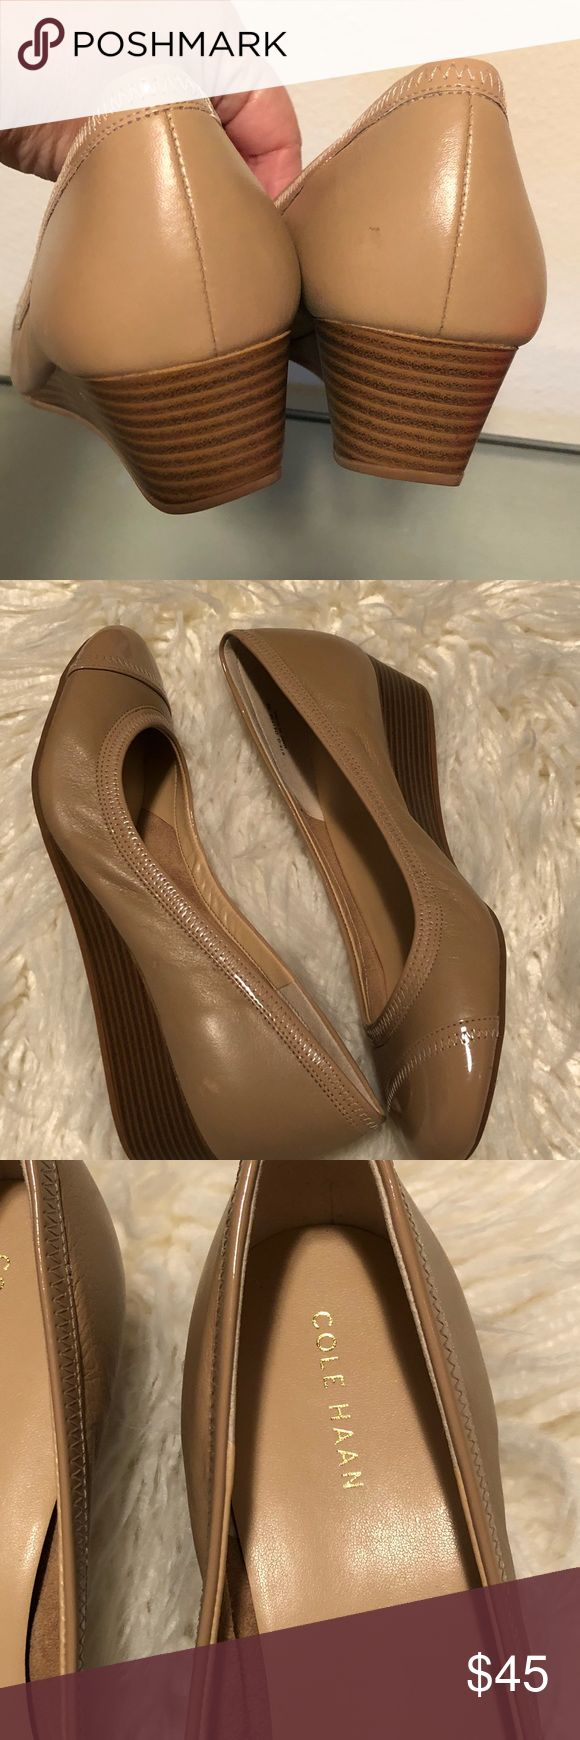 Cole Haan wedges size 8 Cole Haan Wedge  Cream/tan color Size 8 EUC condition Cole Haan Shoes Wedges